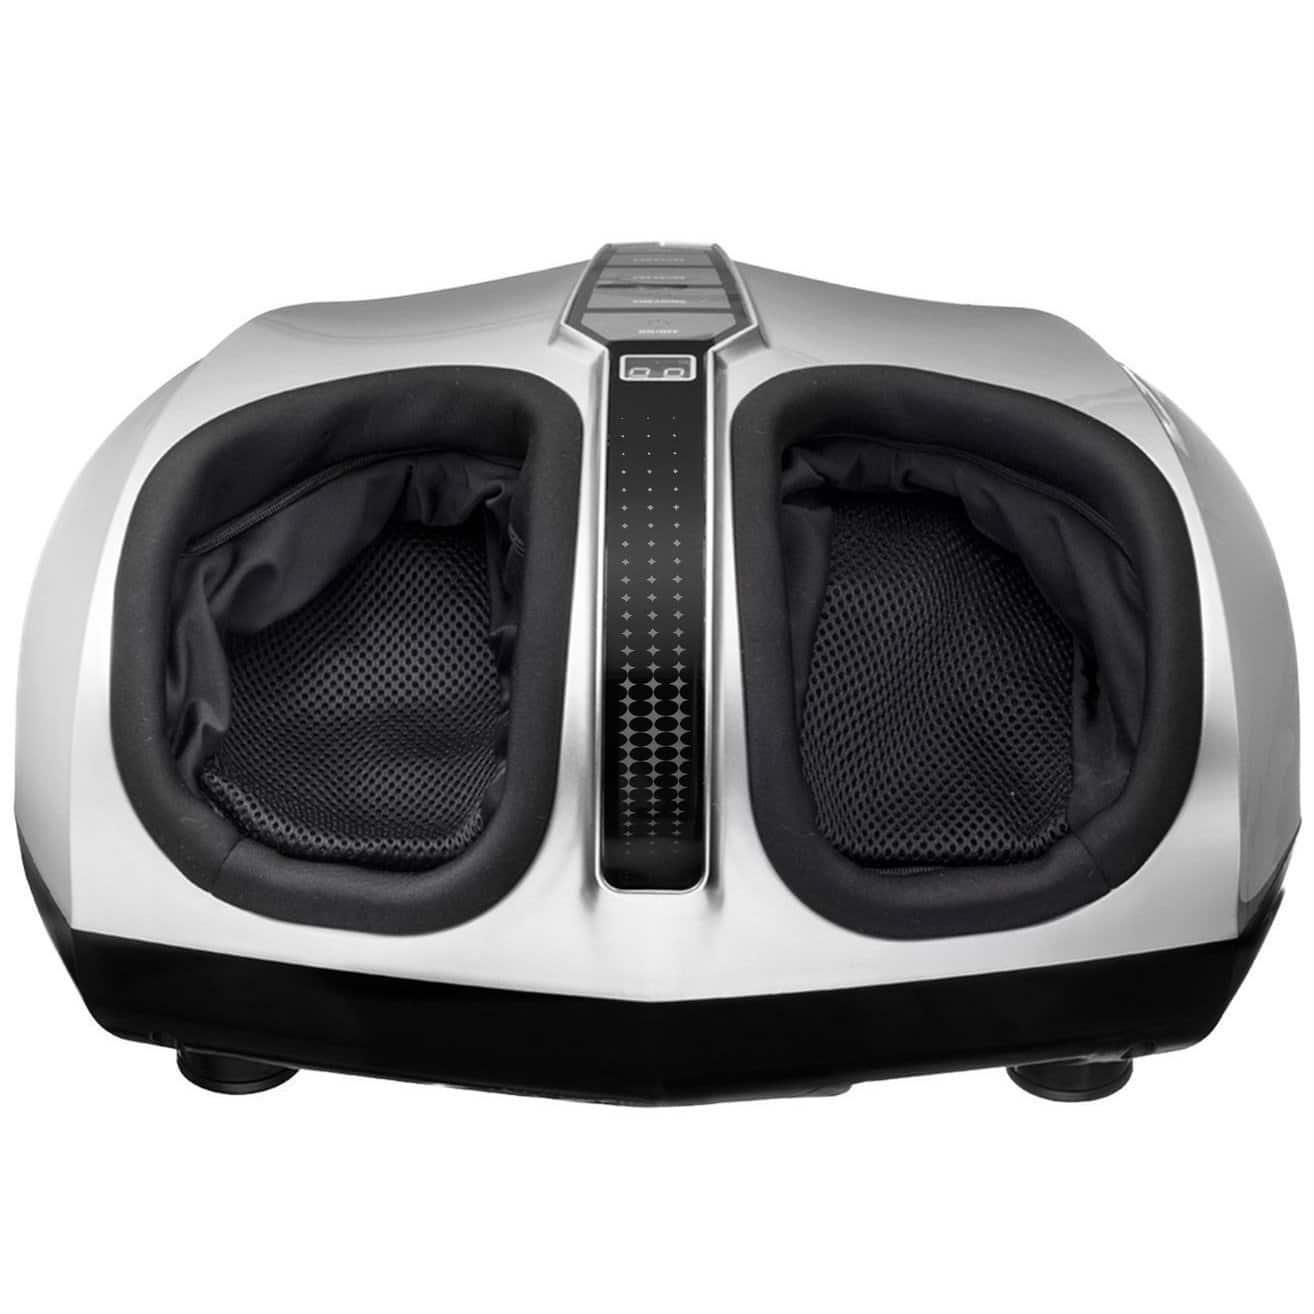 Belmint Shiatsu Foot Massager with Switchable Heat Function, Delivers Deep-Kneading Massage Relief for Tired Muscles and Plantar Fasciitis, $97.9